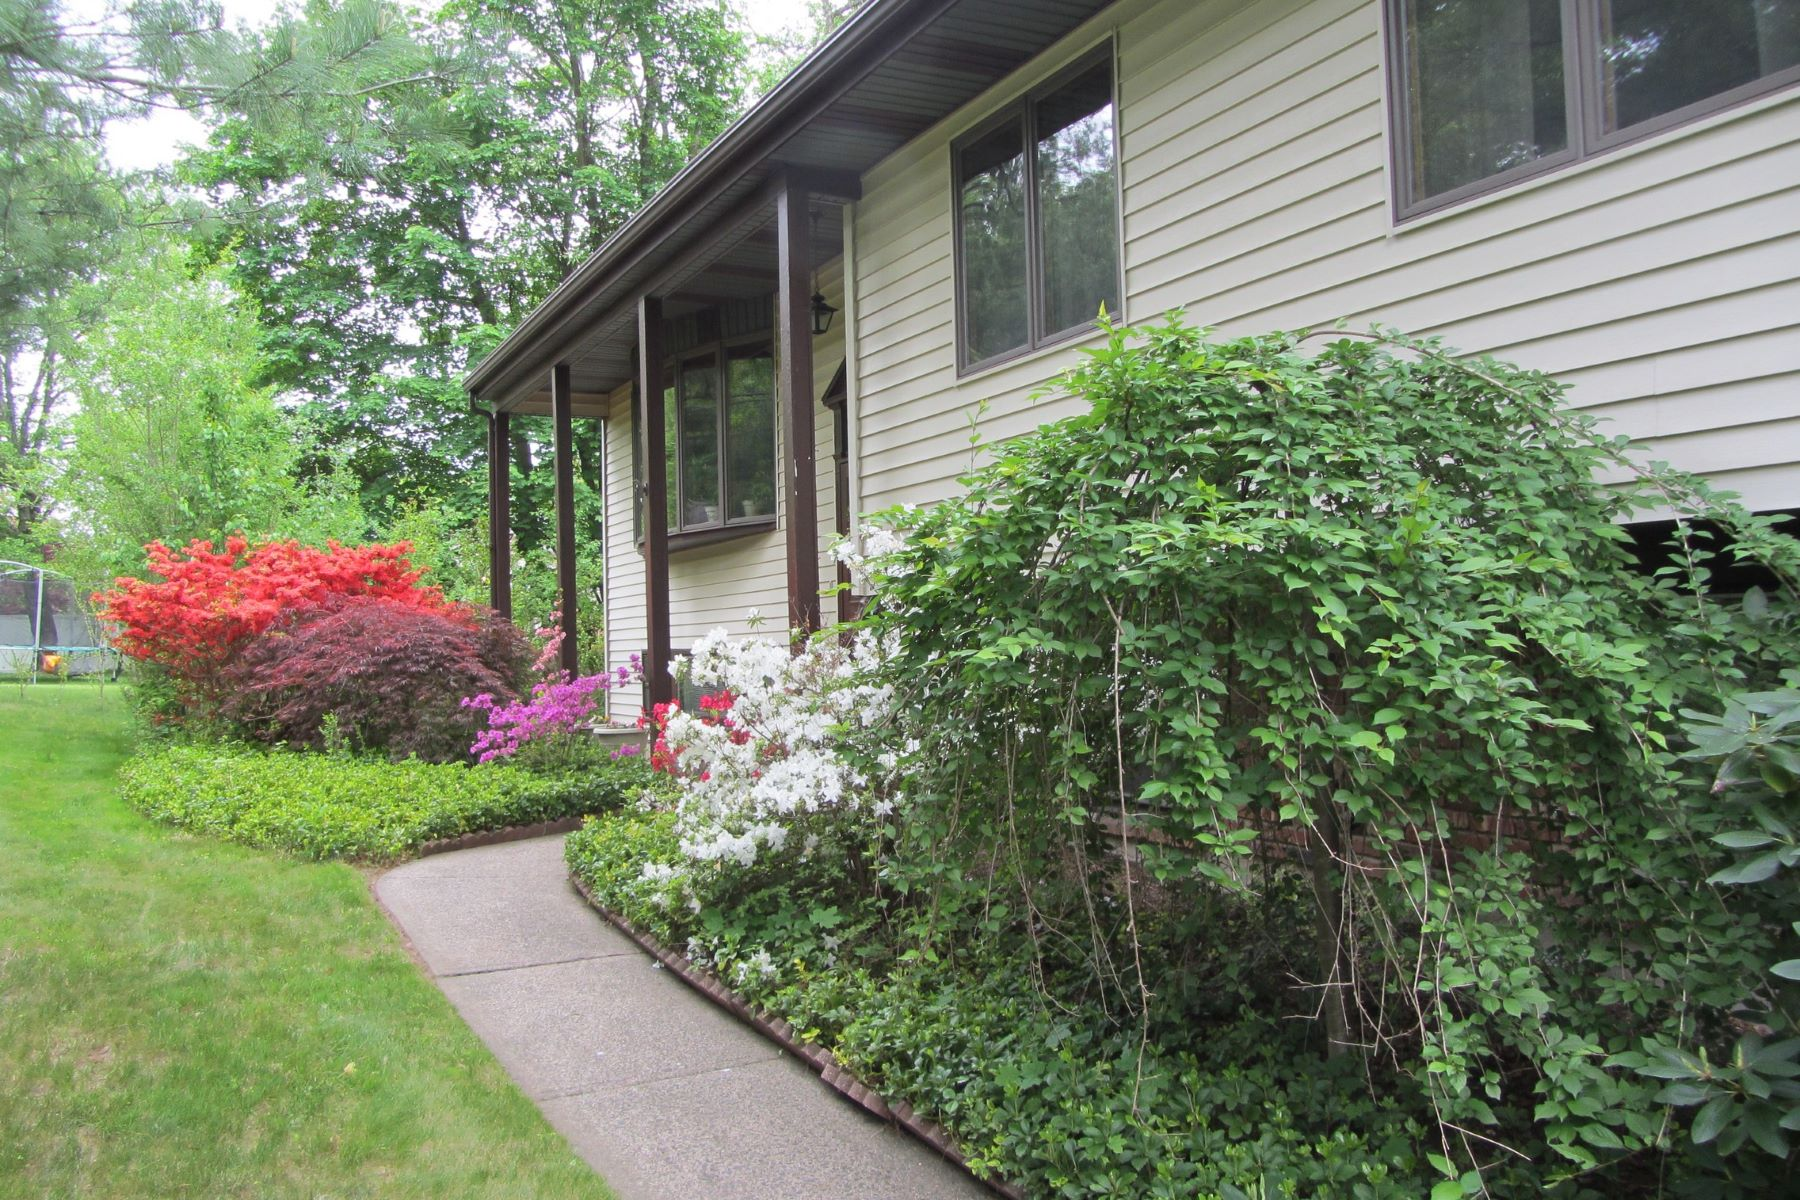 Single Family Home for Sale at Private, Picturesque Setting - Sale Pending 439 Route 306 Wesley Hills, New York, 10952 United States